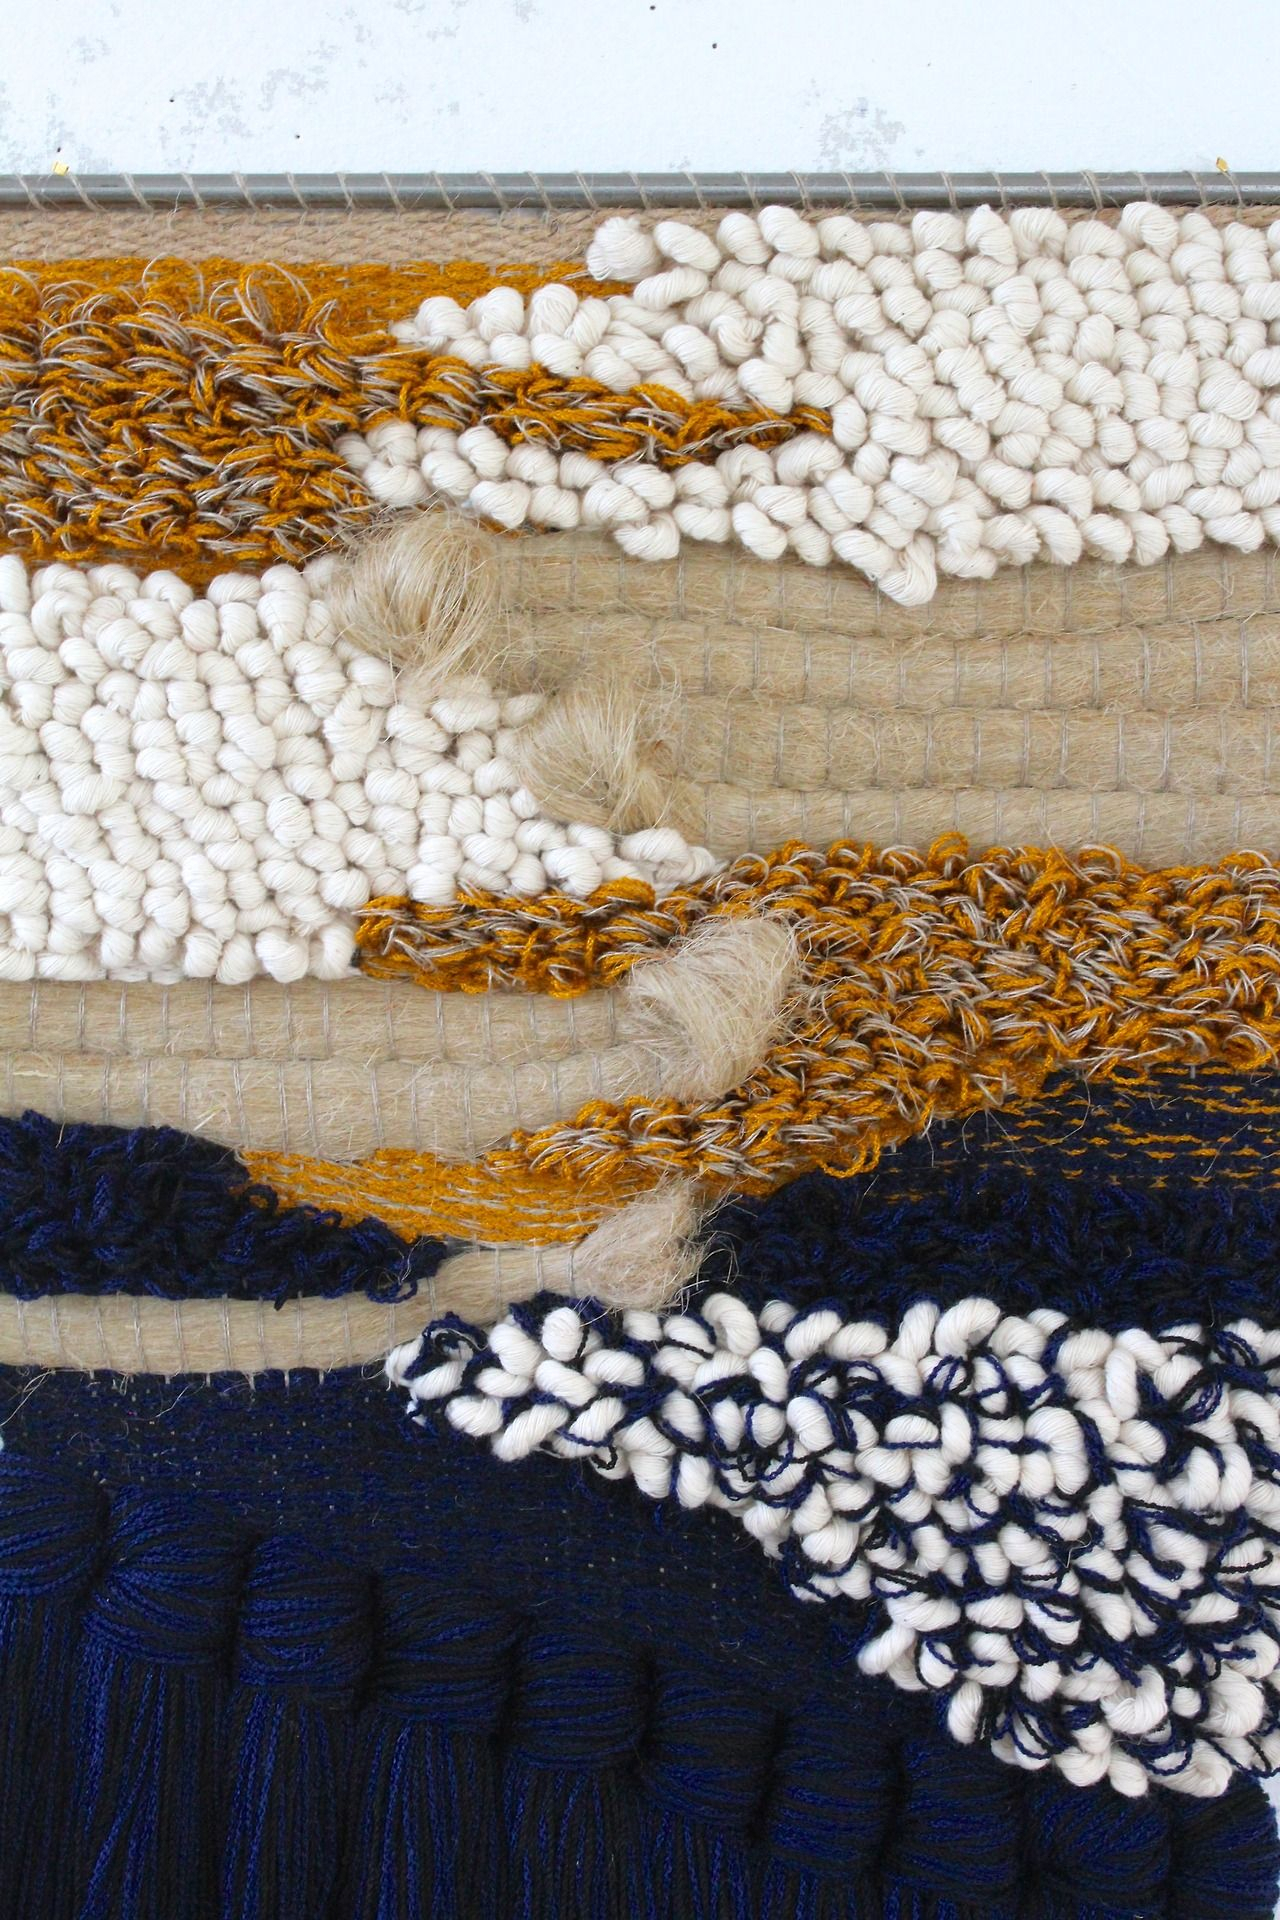 I Really Love The Textural Quality Of This Woven Material Regarding Most Current Blended Fabric Trust In The Lord Tapestries And Wall Hangings (View 2 of 20)